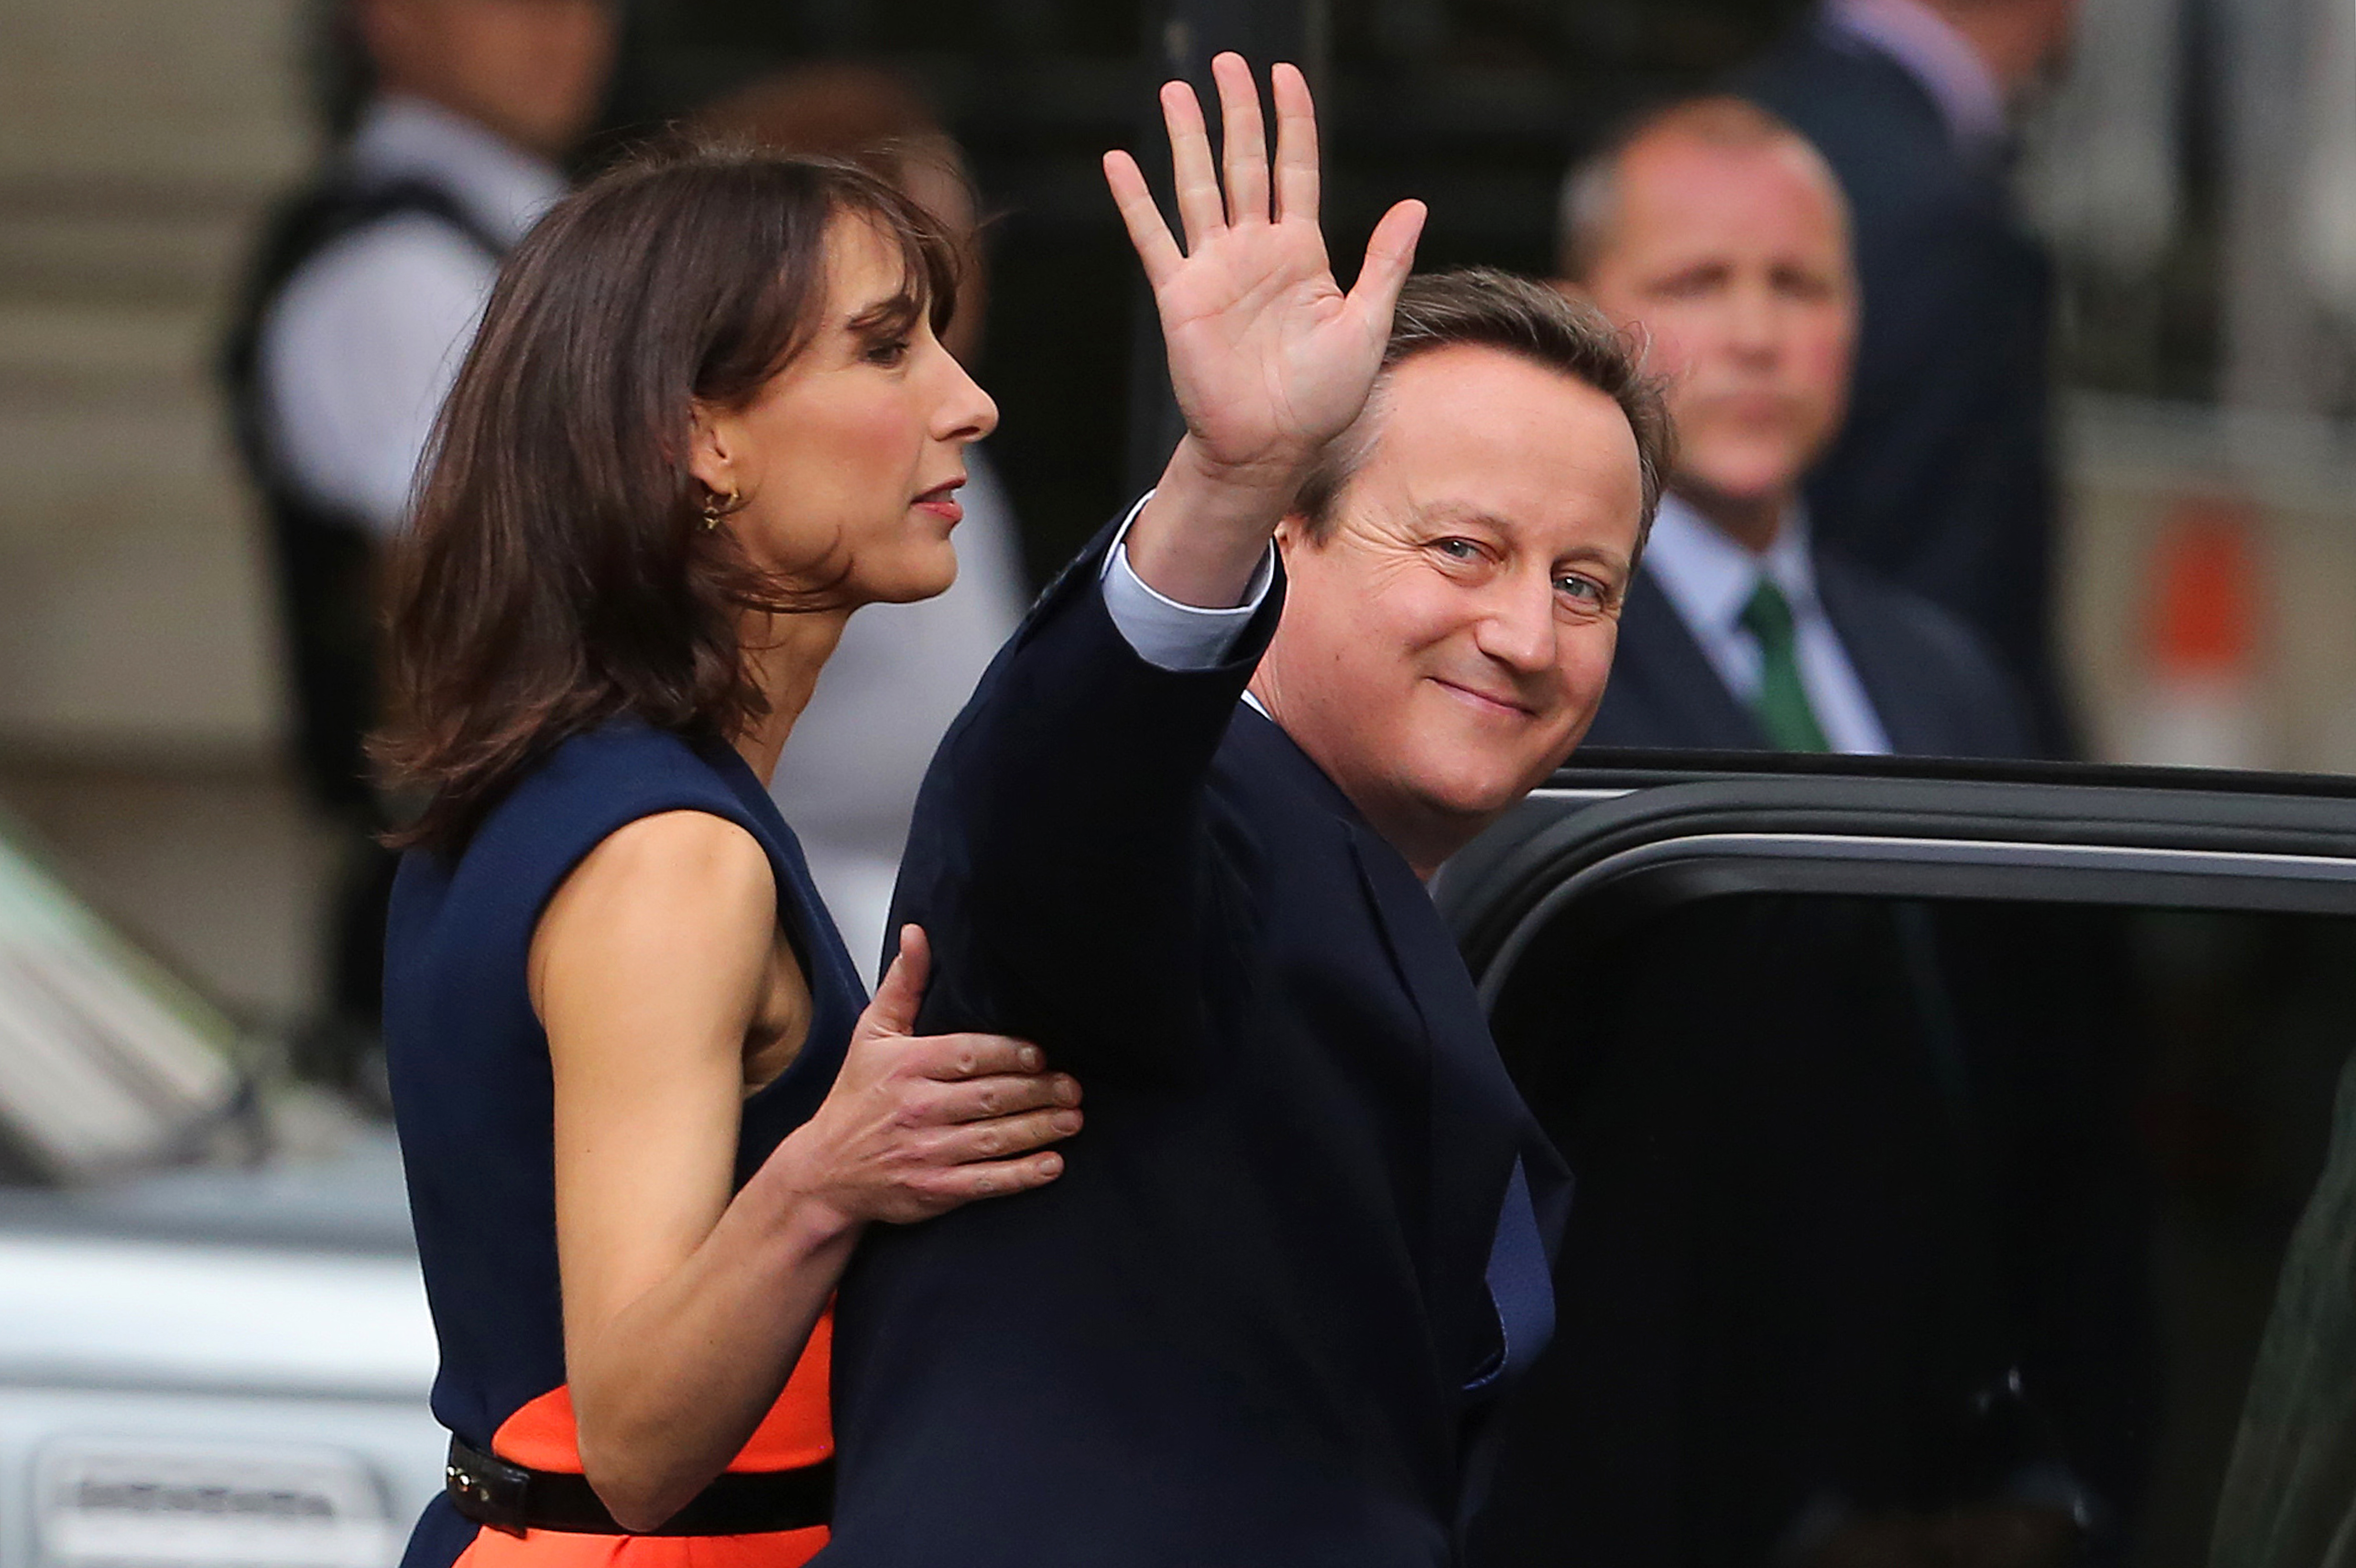 United Kingdom launches probe into David Cameron's lobbying for financier Greensill